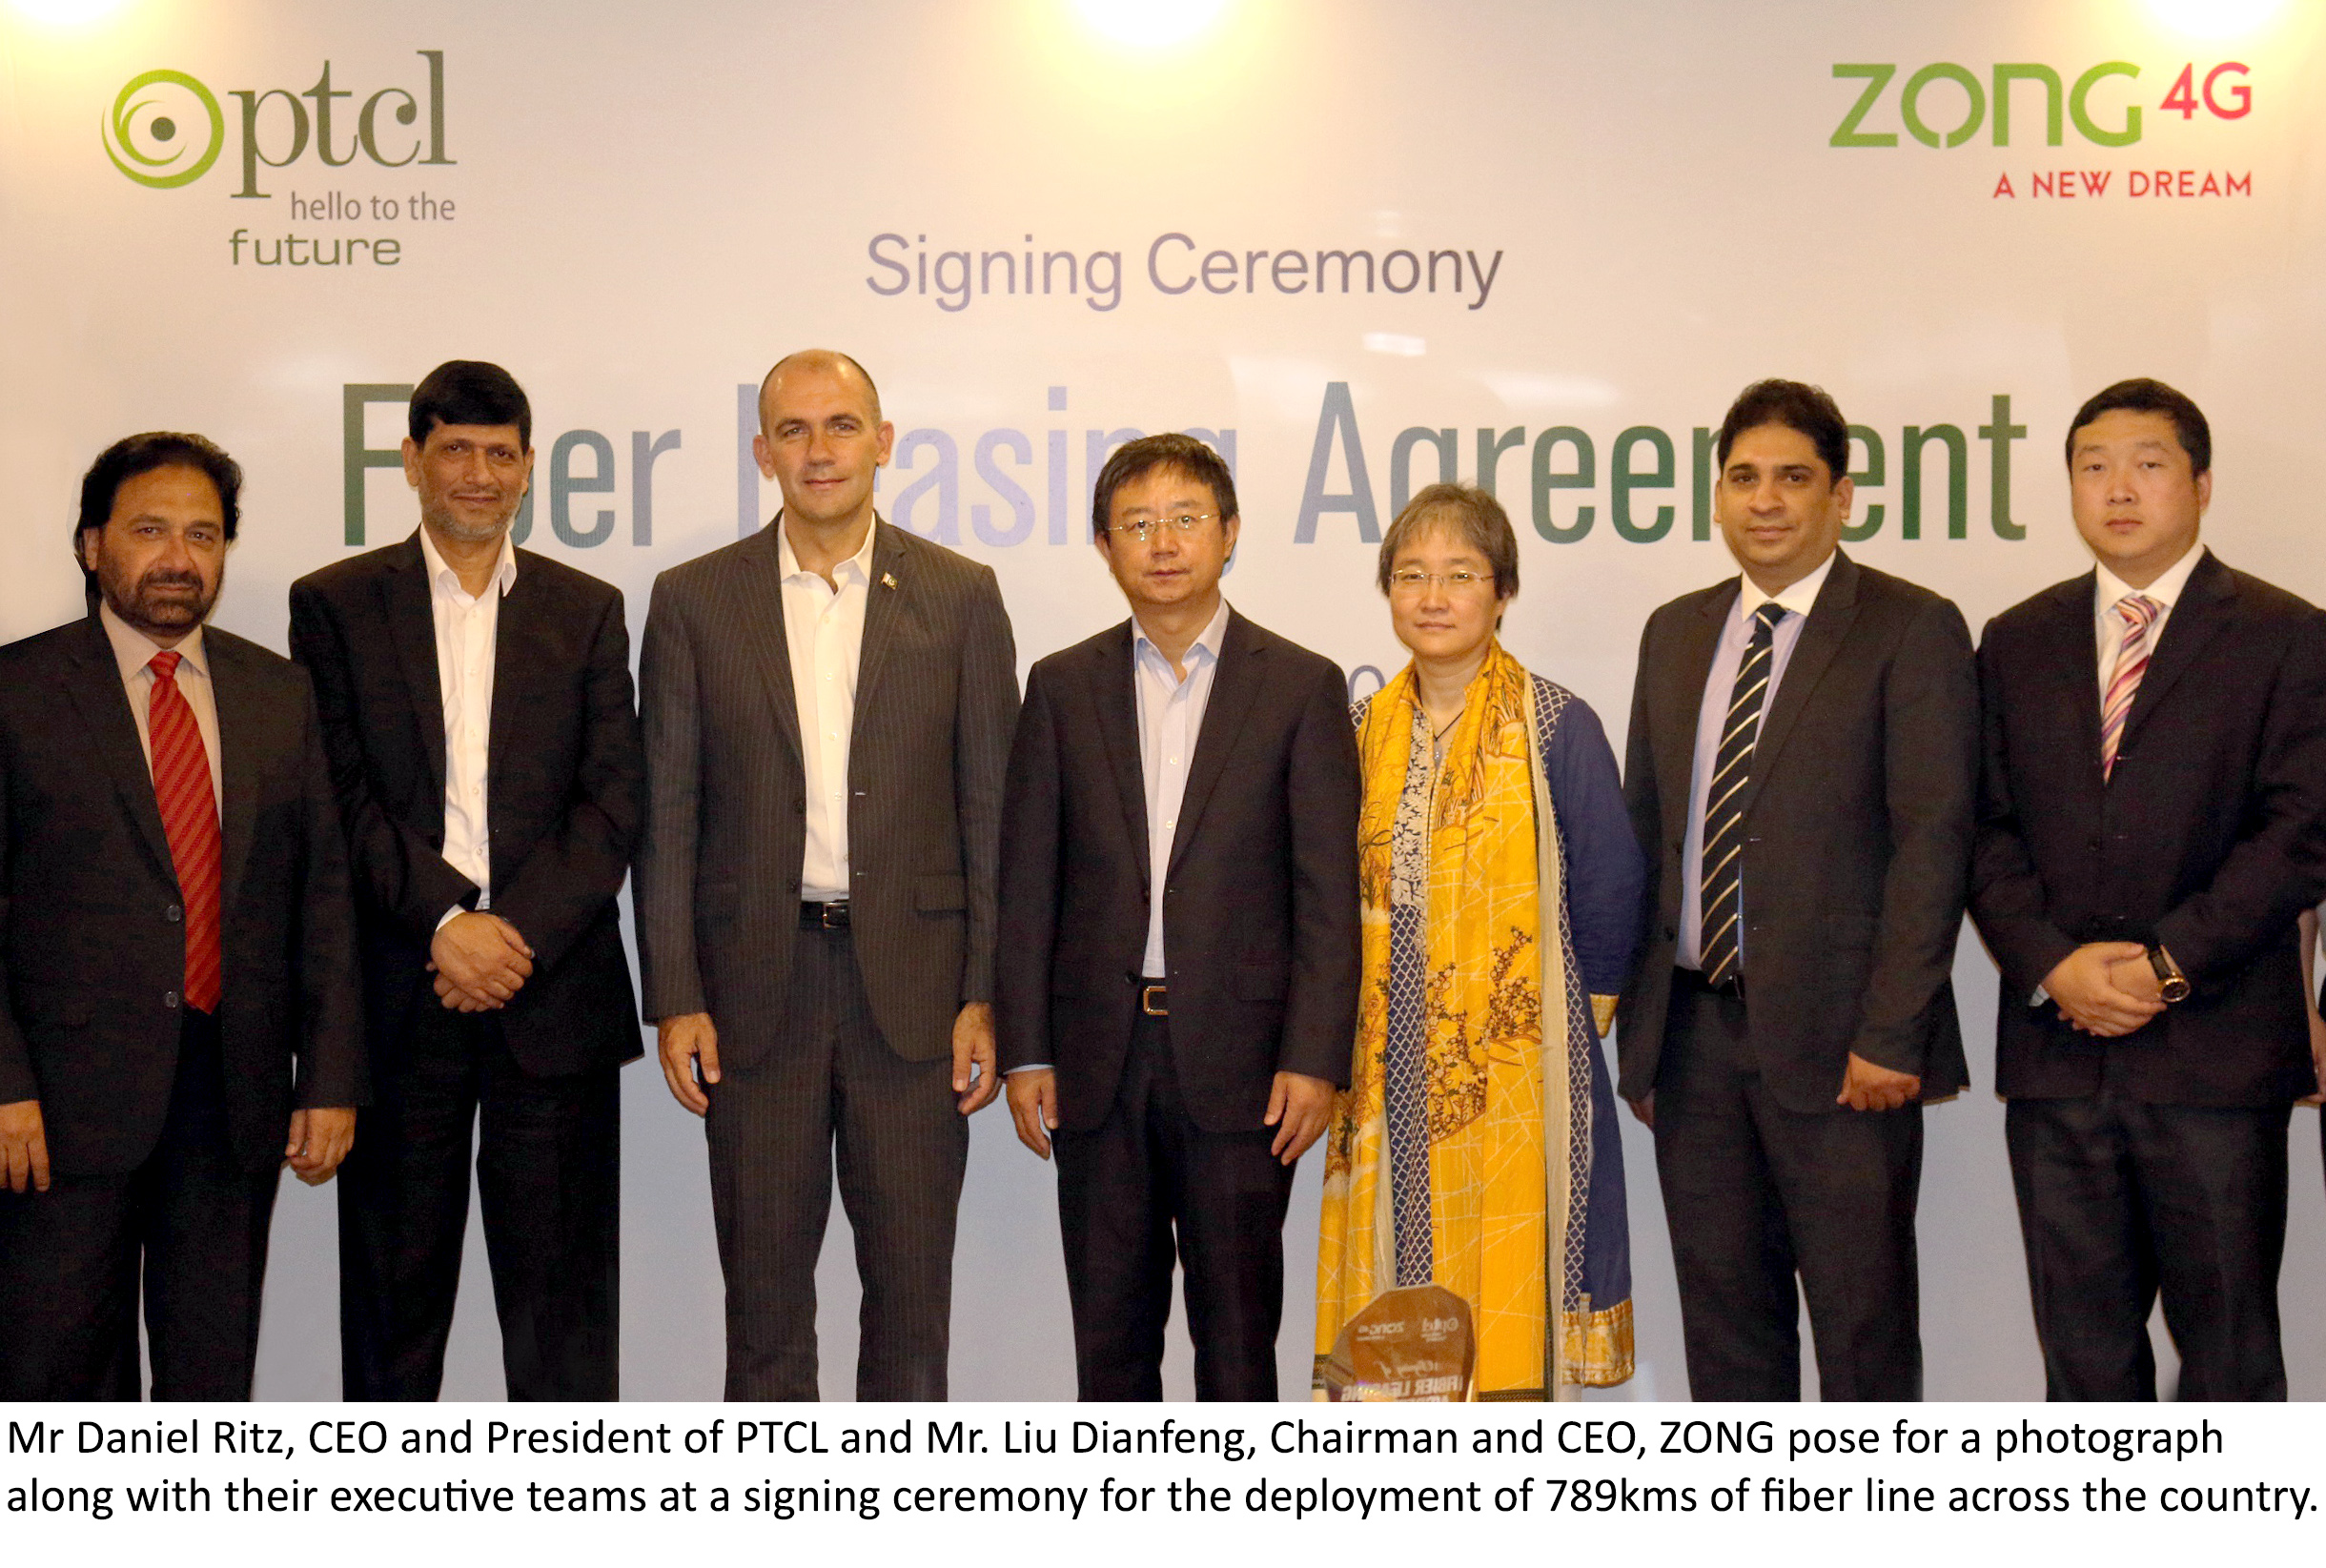 PTCL and ZONG Sign Fiber Leasing Agreement